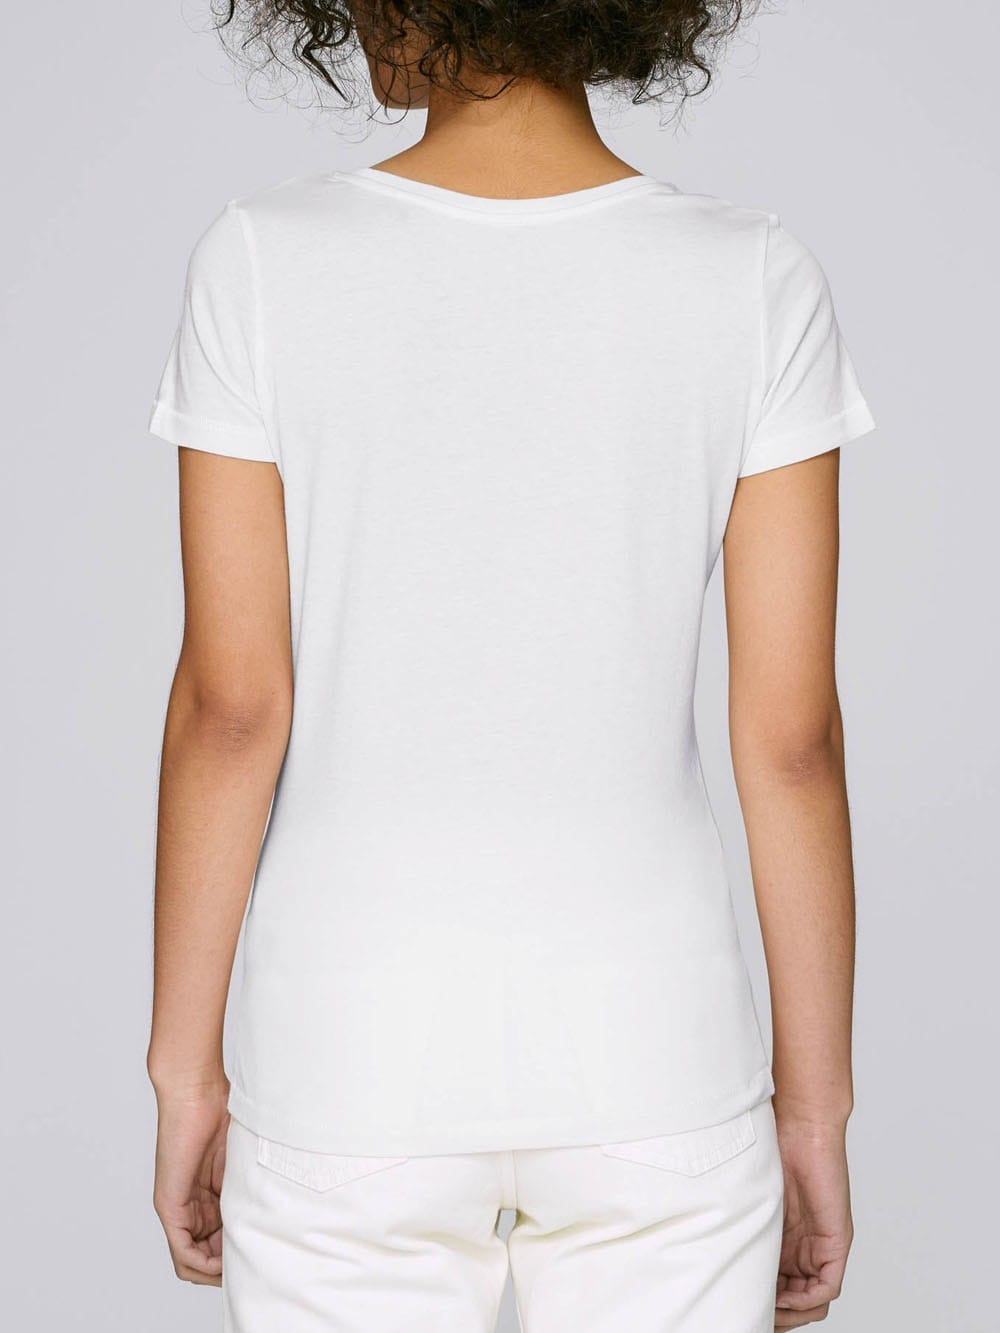 T-shirt made of Organic Cotton-Loves